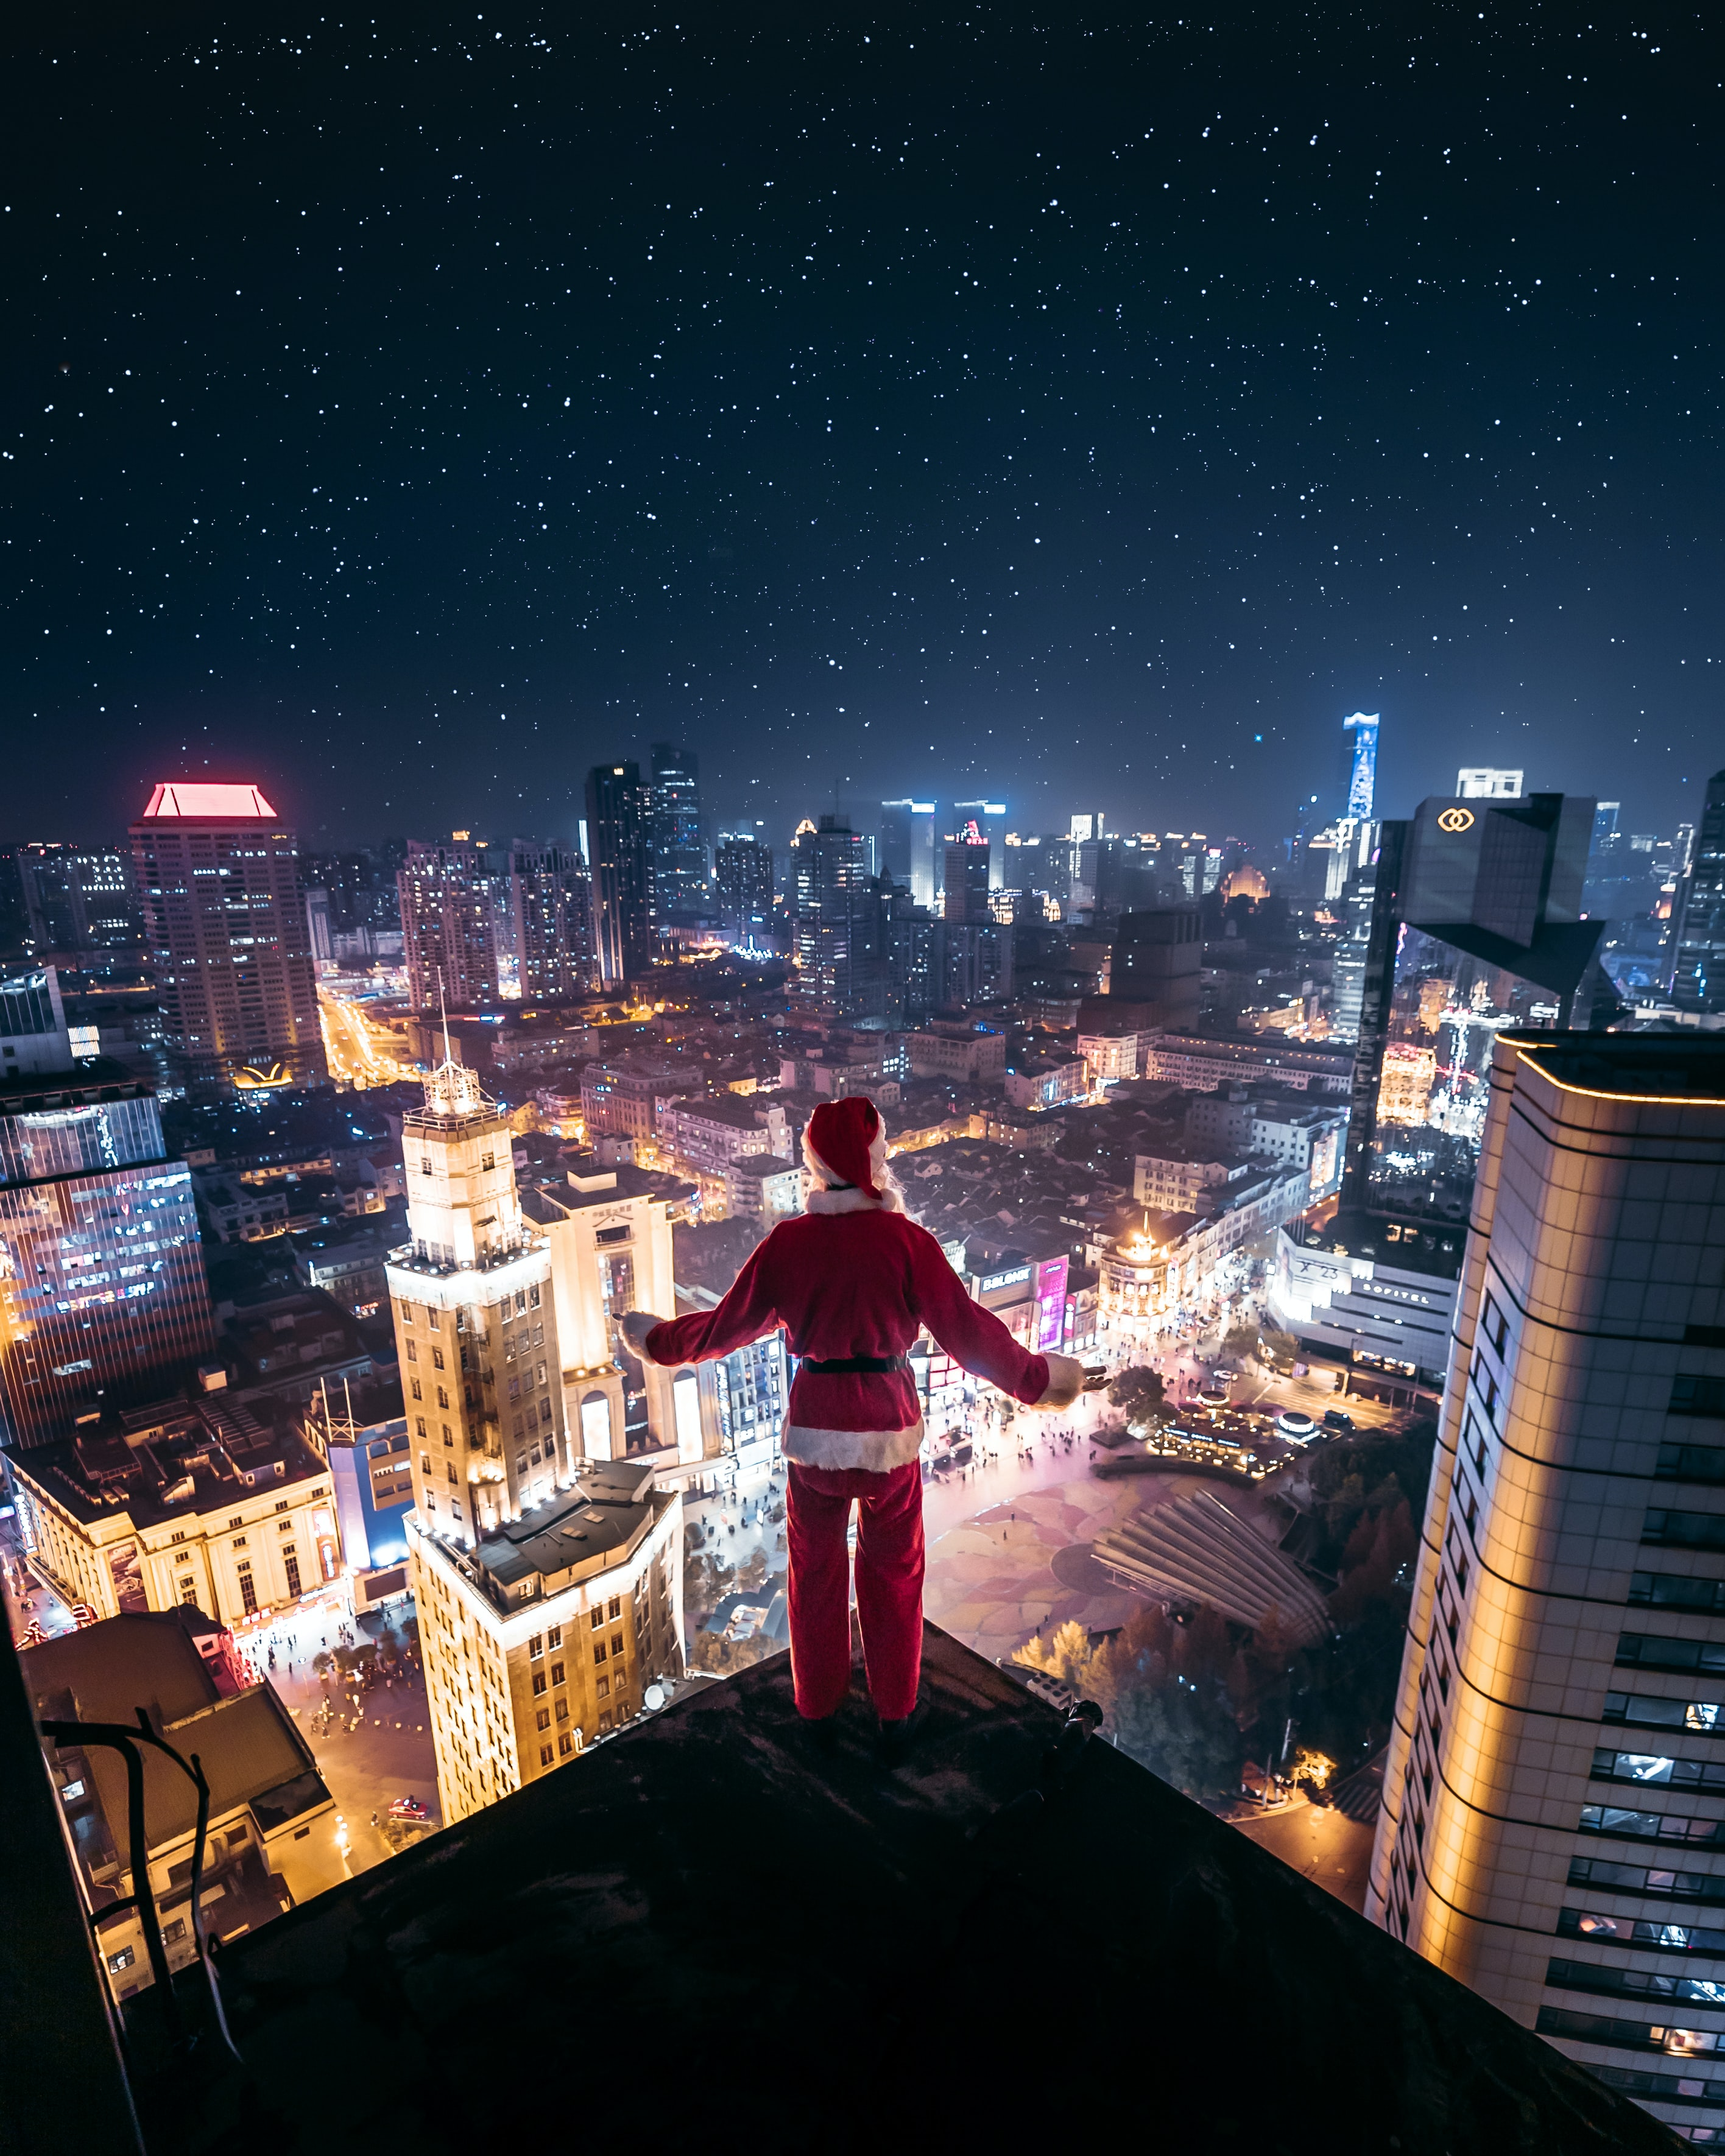 person wearing Santa Claus outfit standing on the edge of building at night time